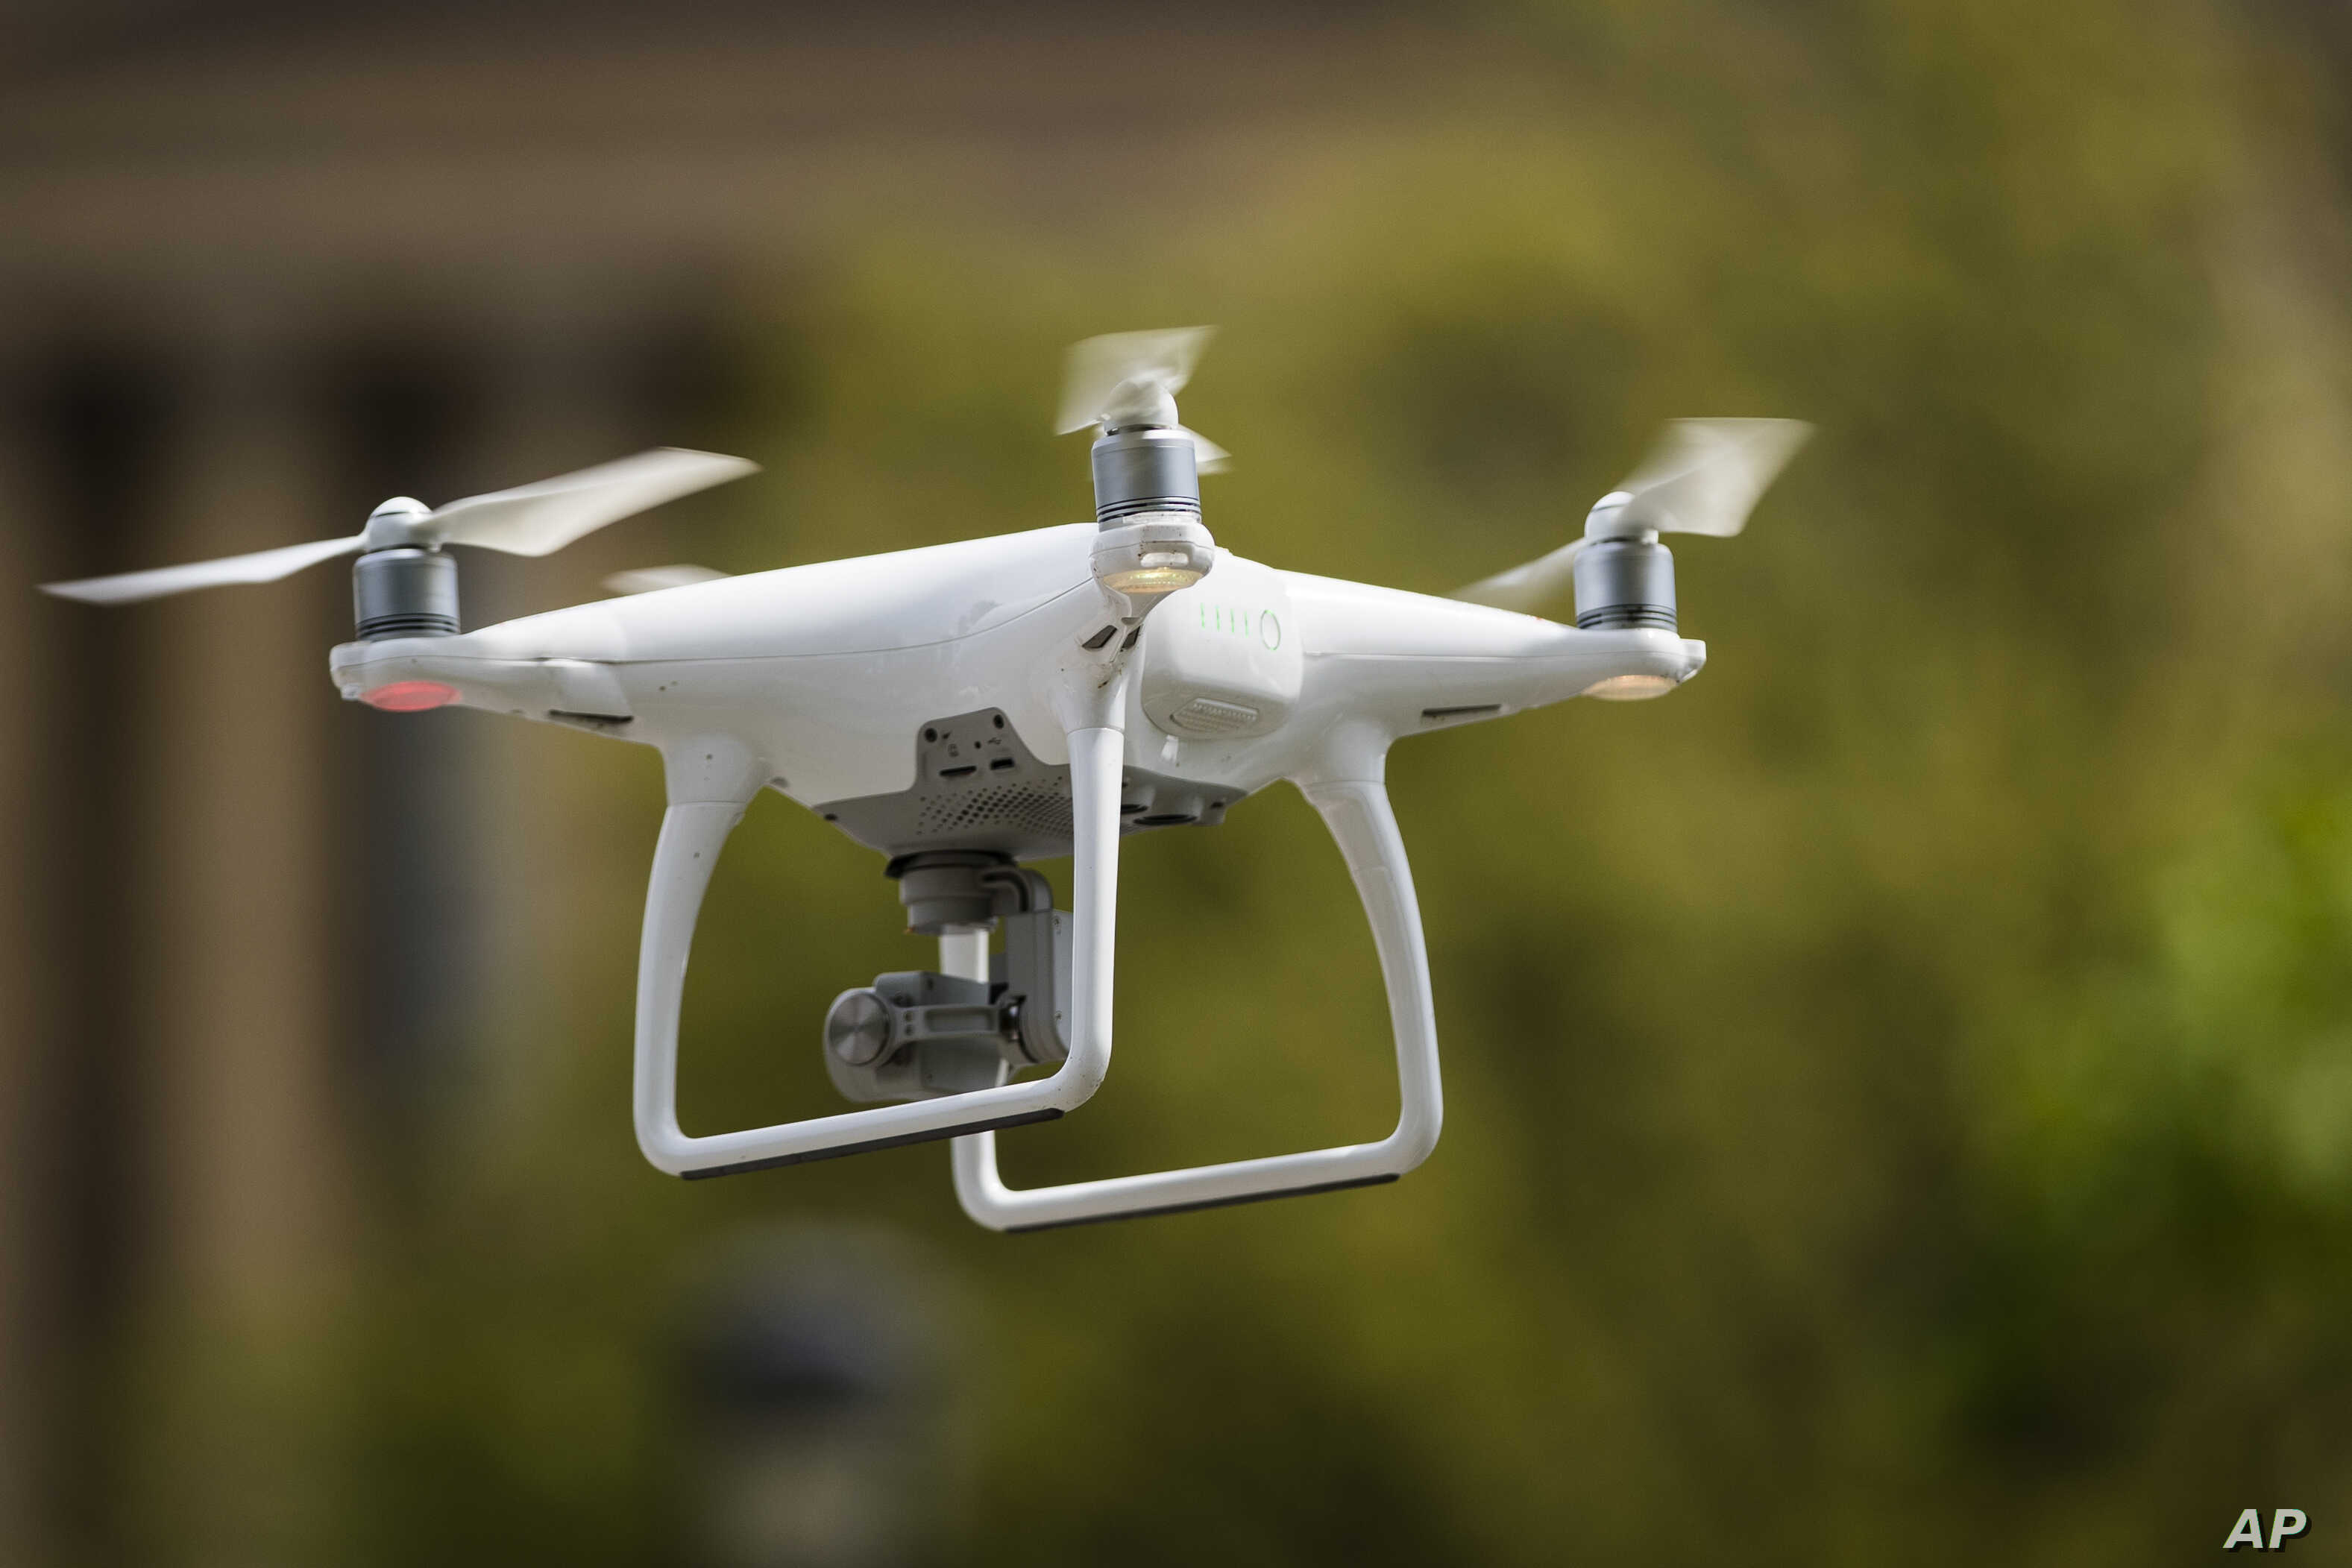 Airlines Agency Backs Creation of Global Drone Registry | Voice of